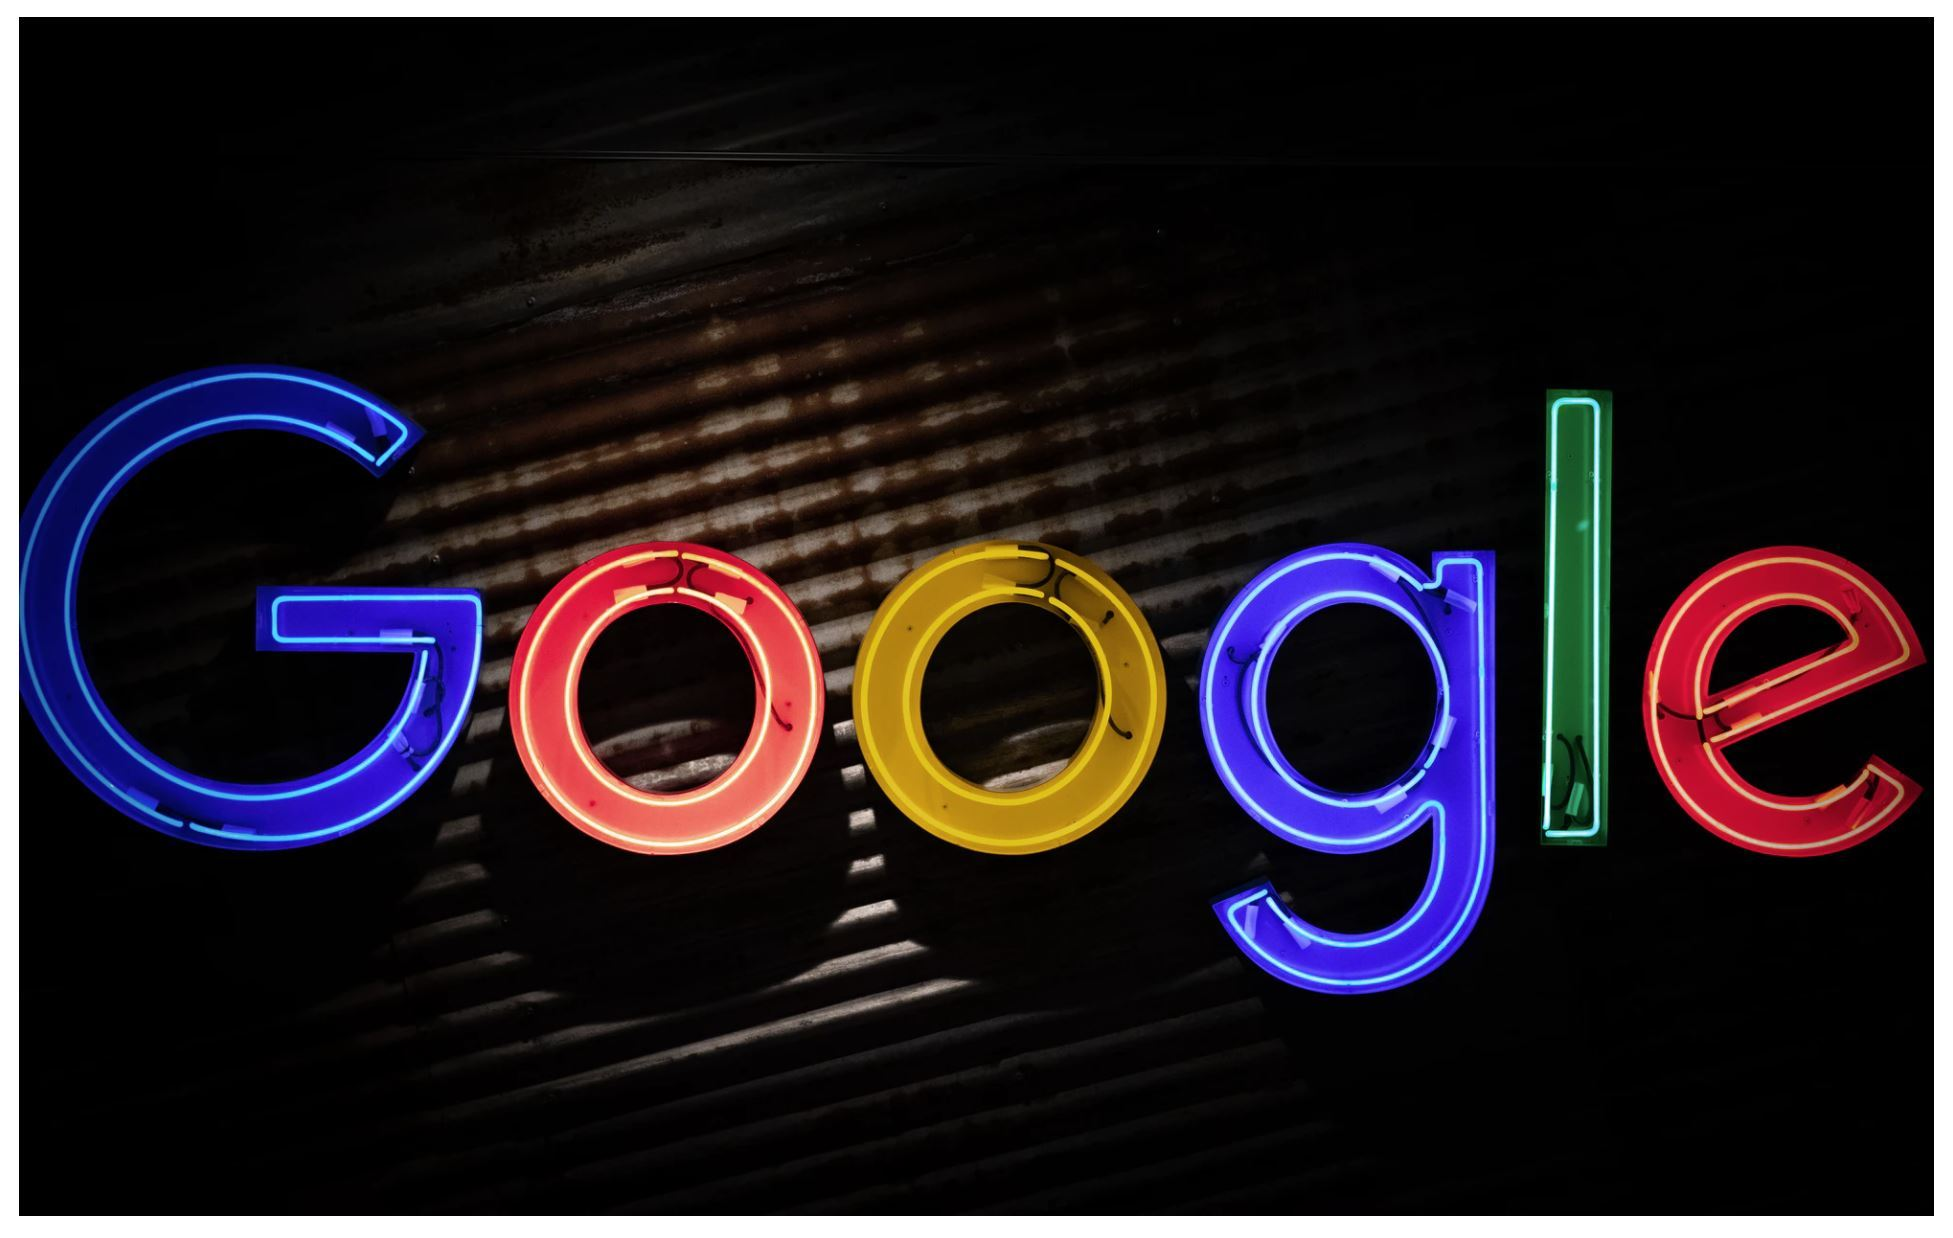 Google advertising is everywhere, but should spy less in the future